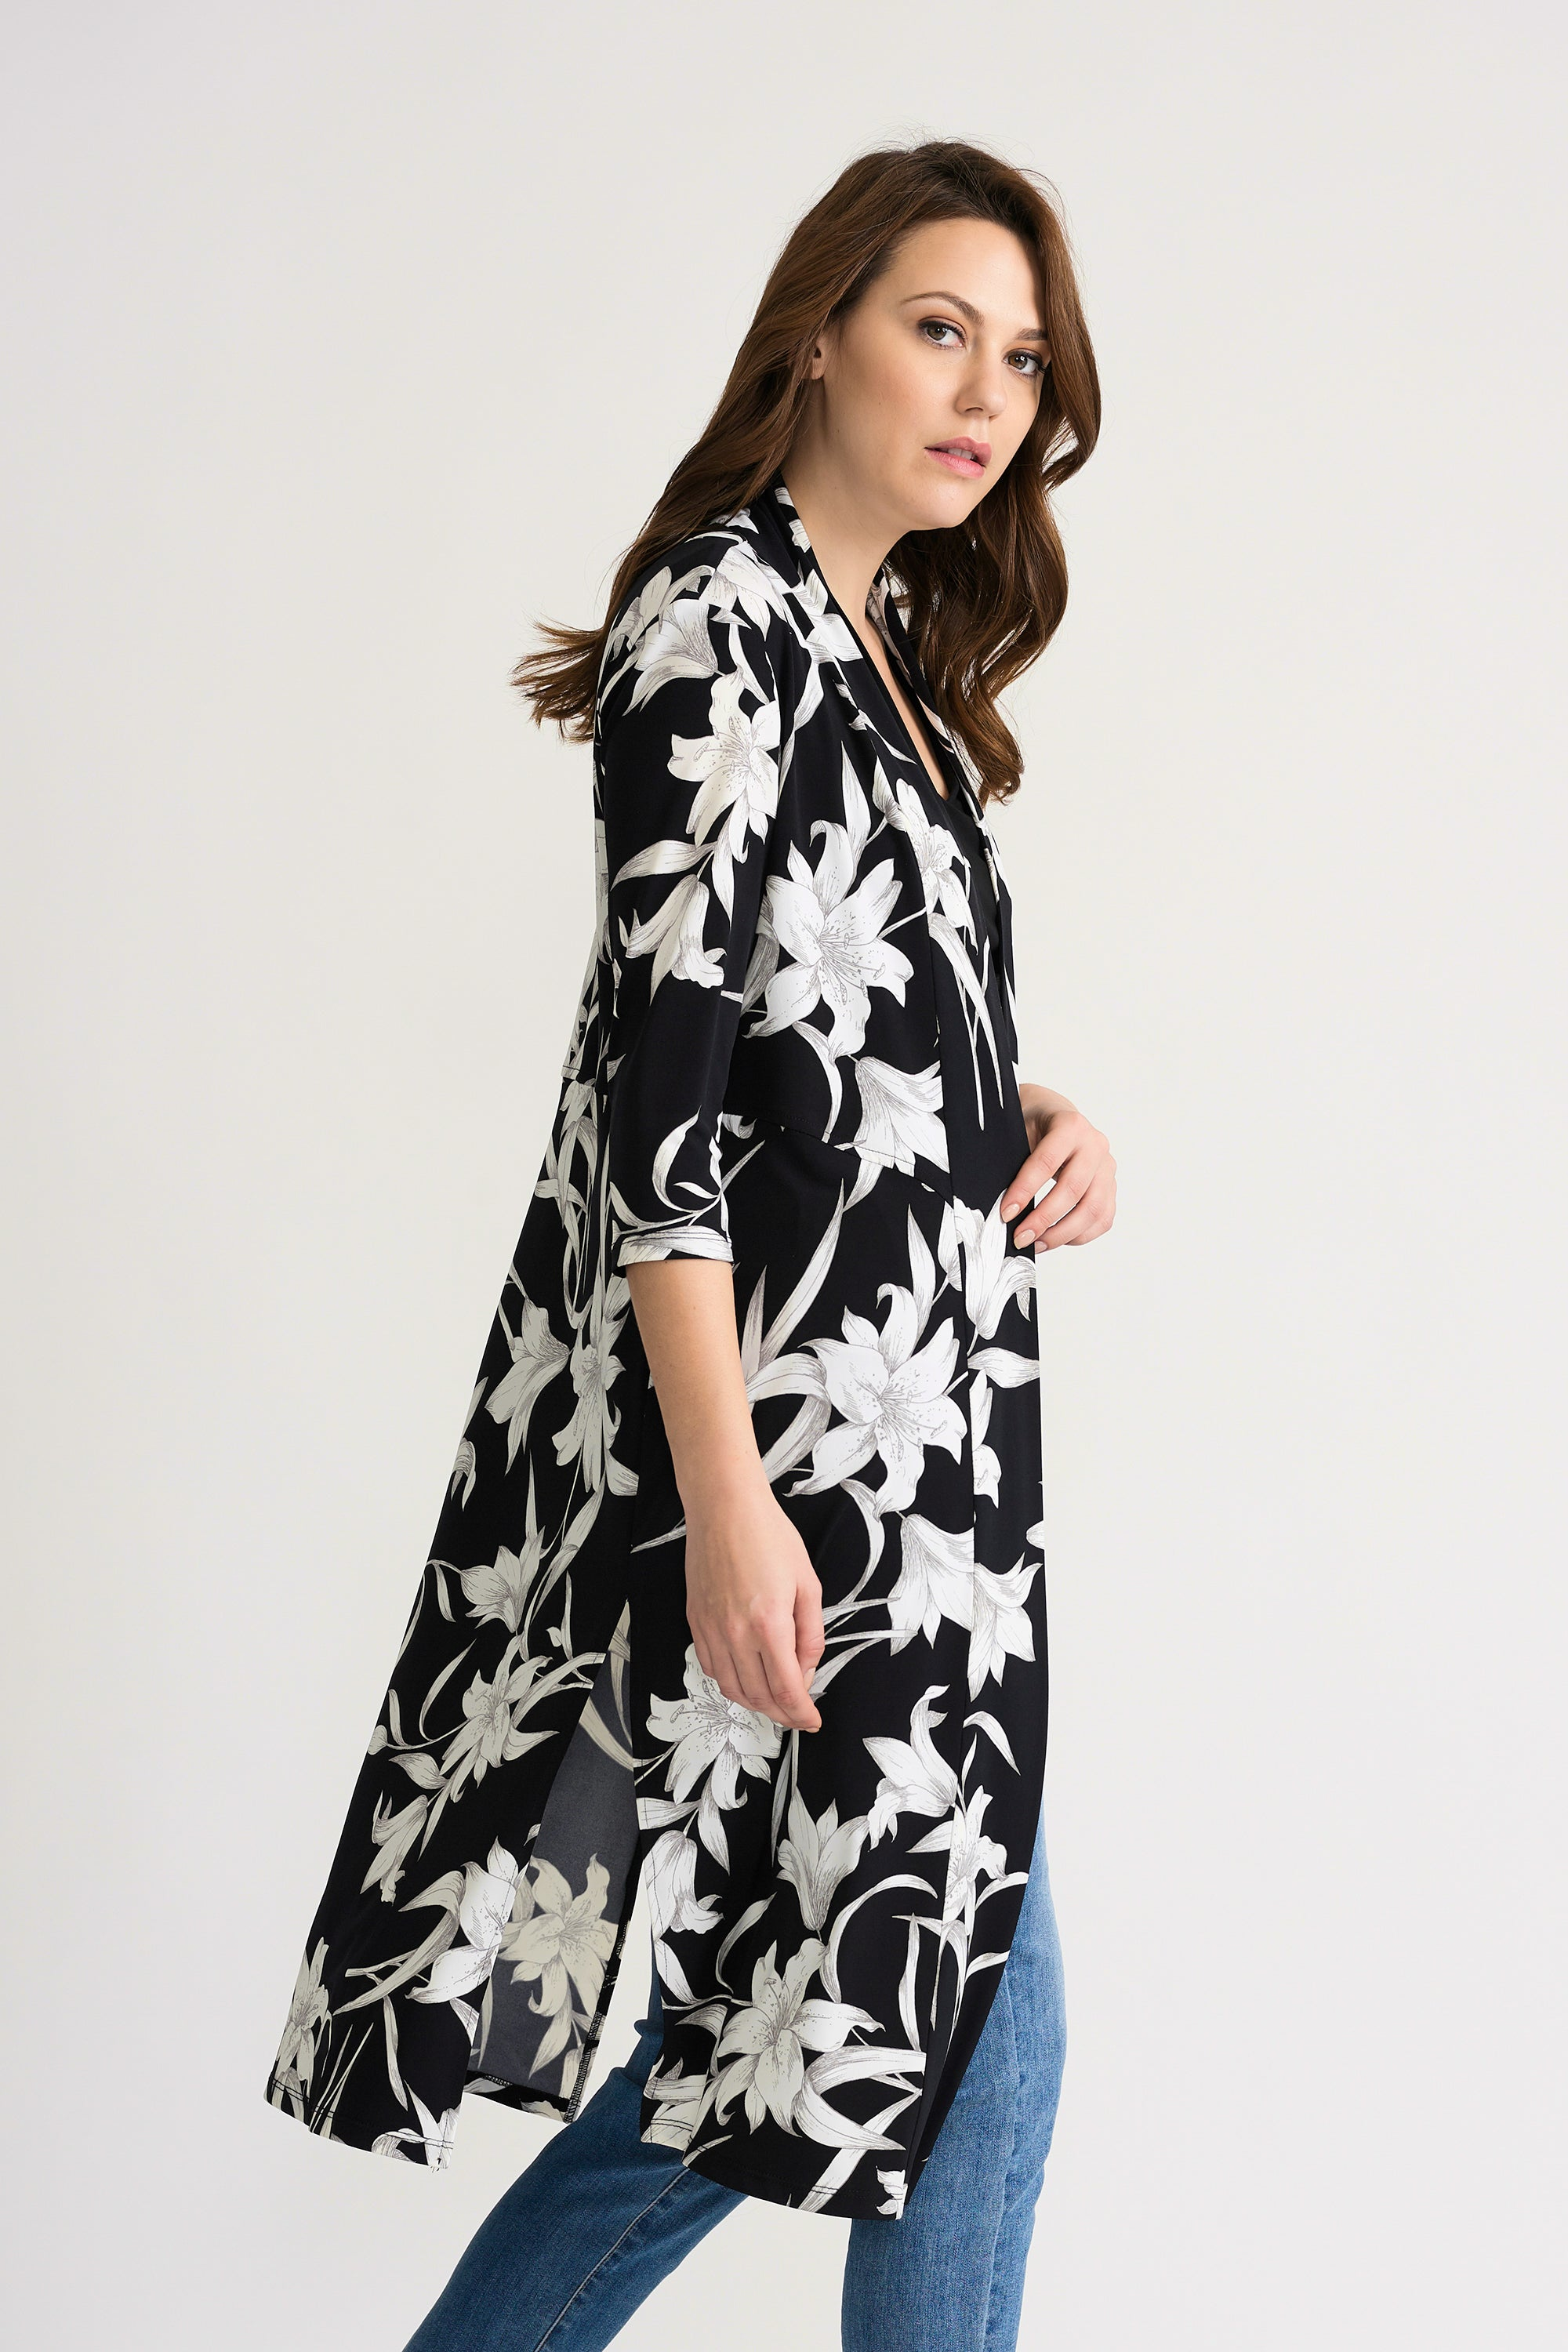 Floral Long Cardi / Beach Cover